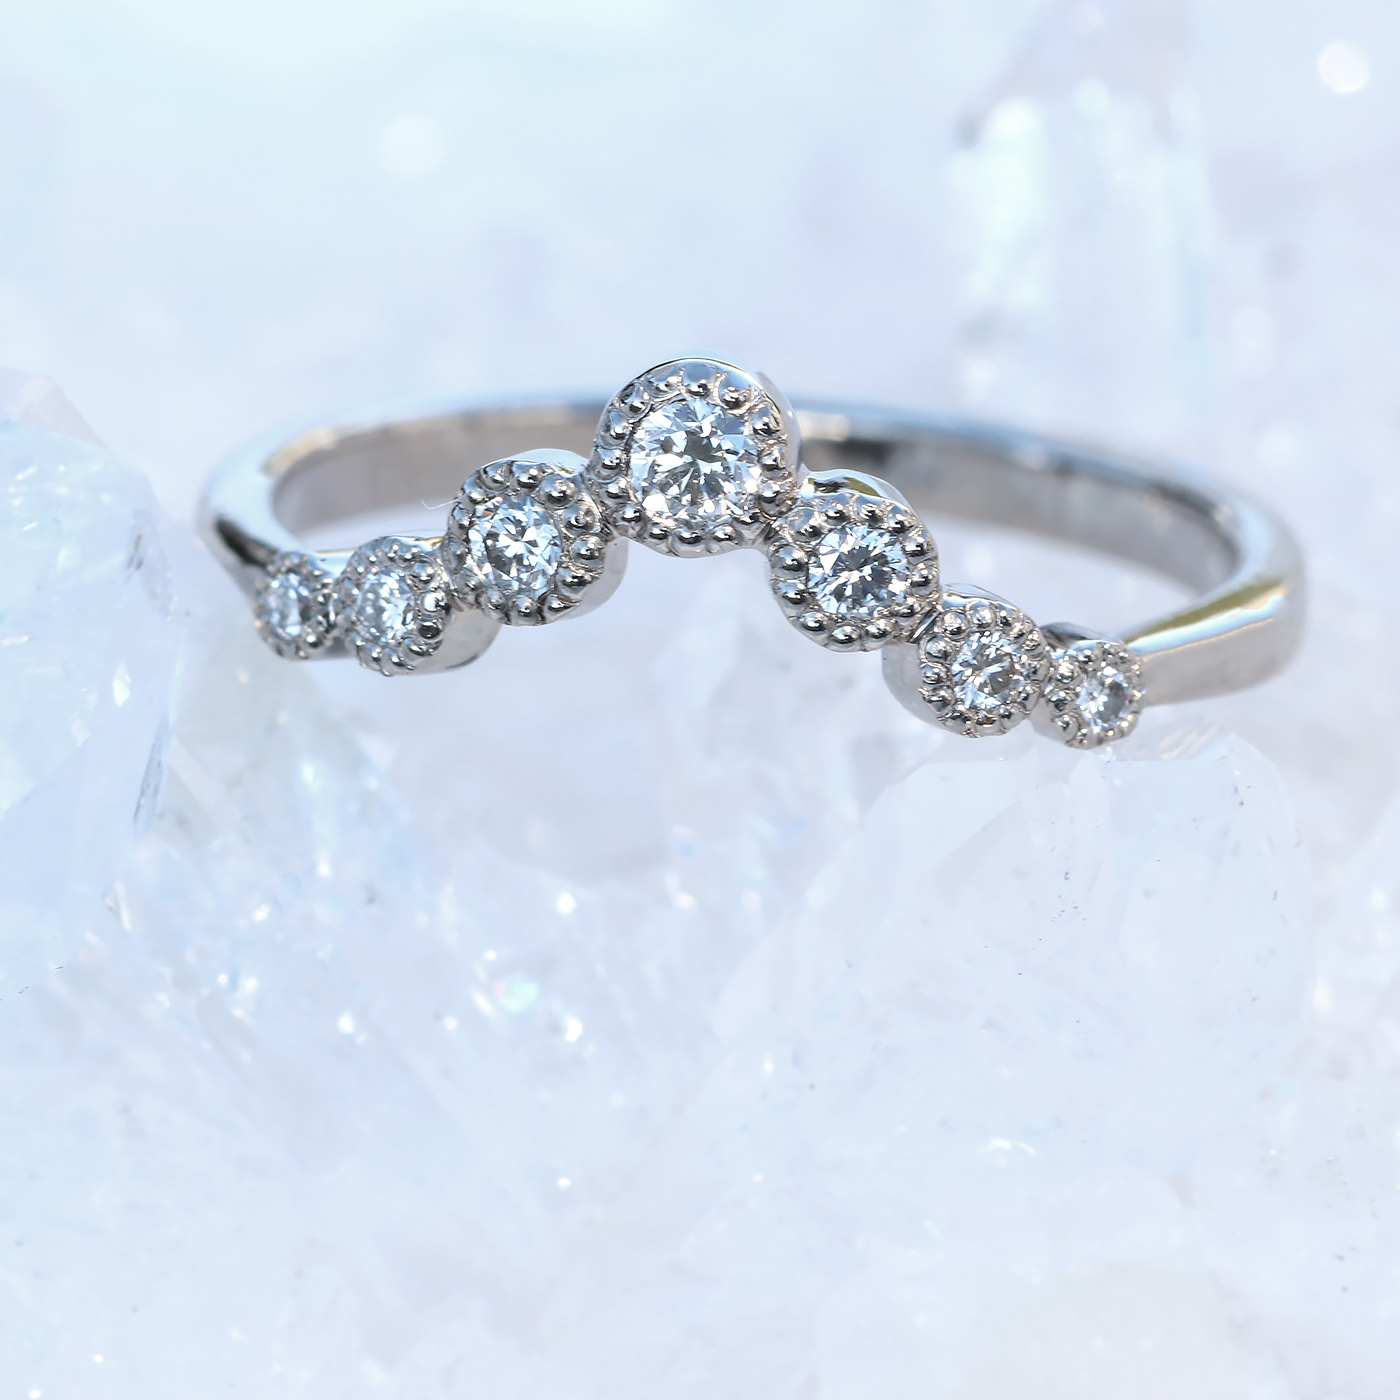 Ethical Diamond Wishbone Wedding Ring Throughout Most Current Polished Wishbone Rings (View 13 of 25)